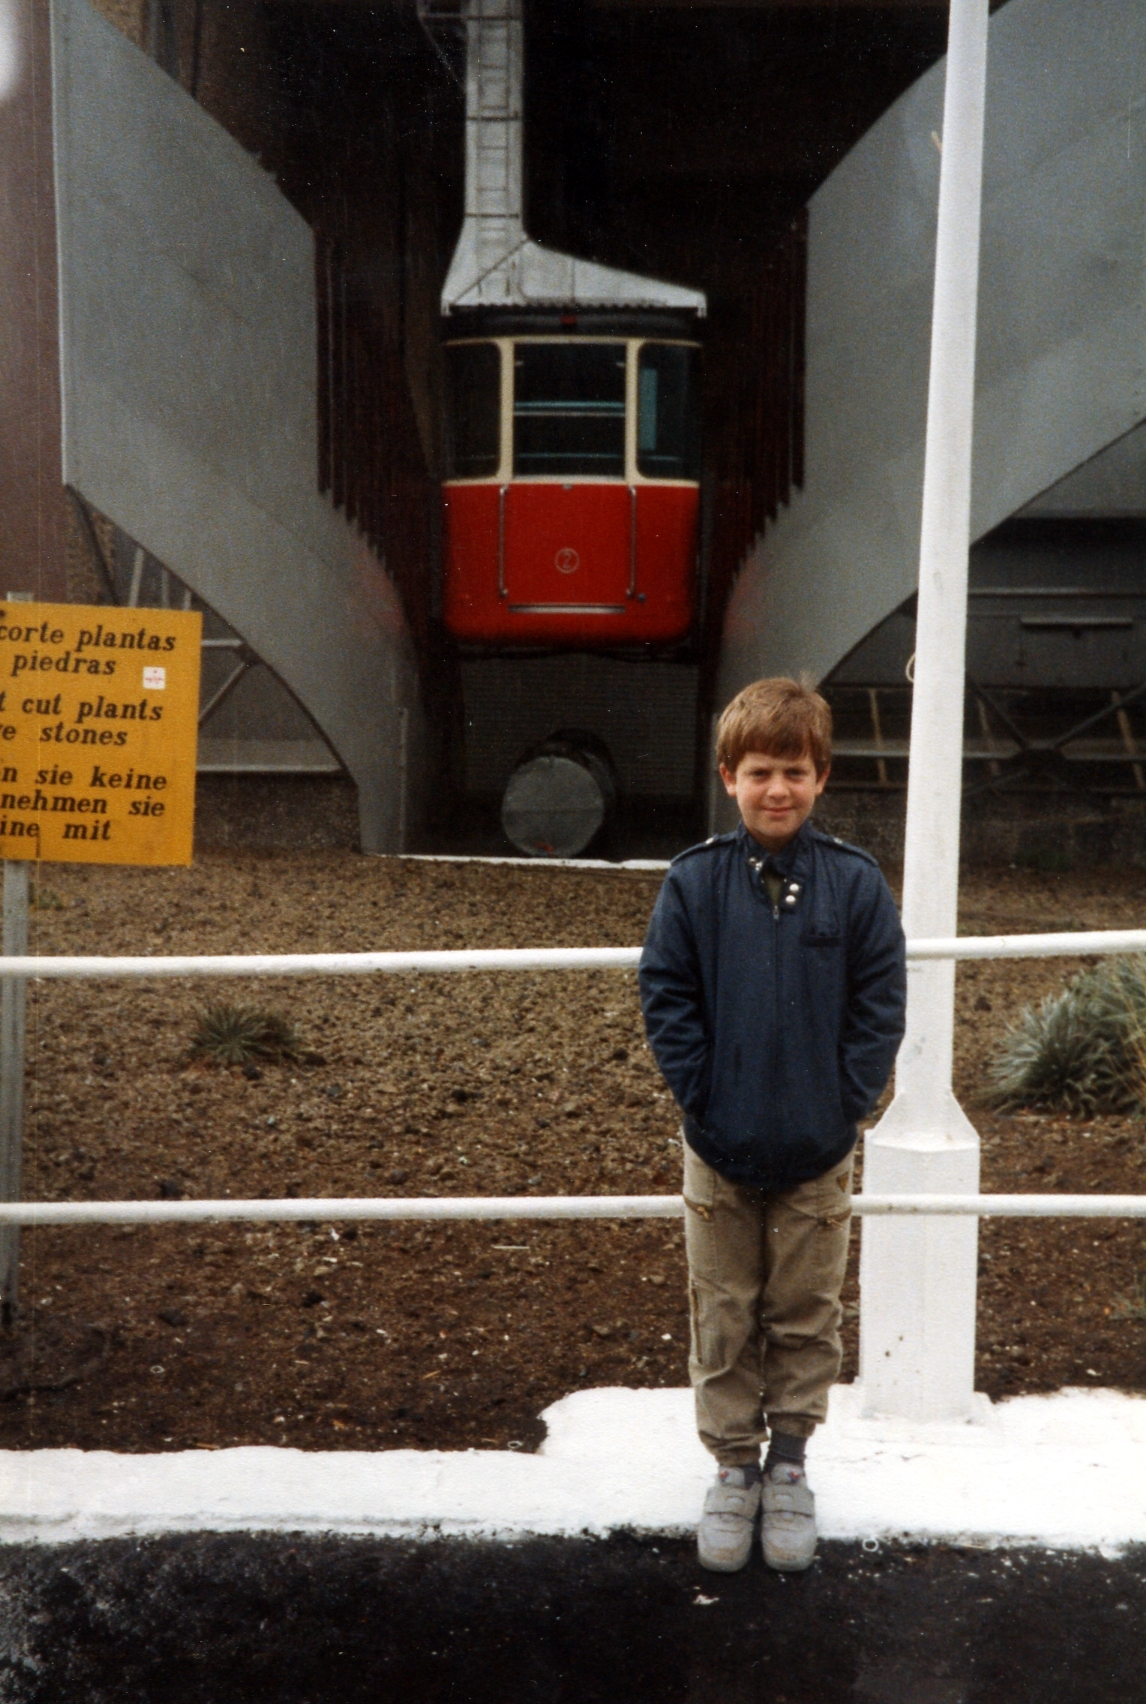 Old cable car: mid 1980s